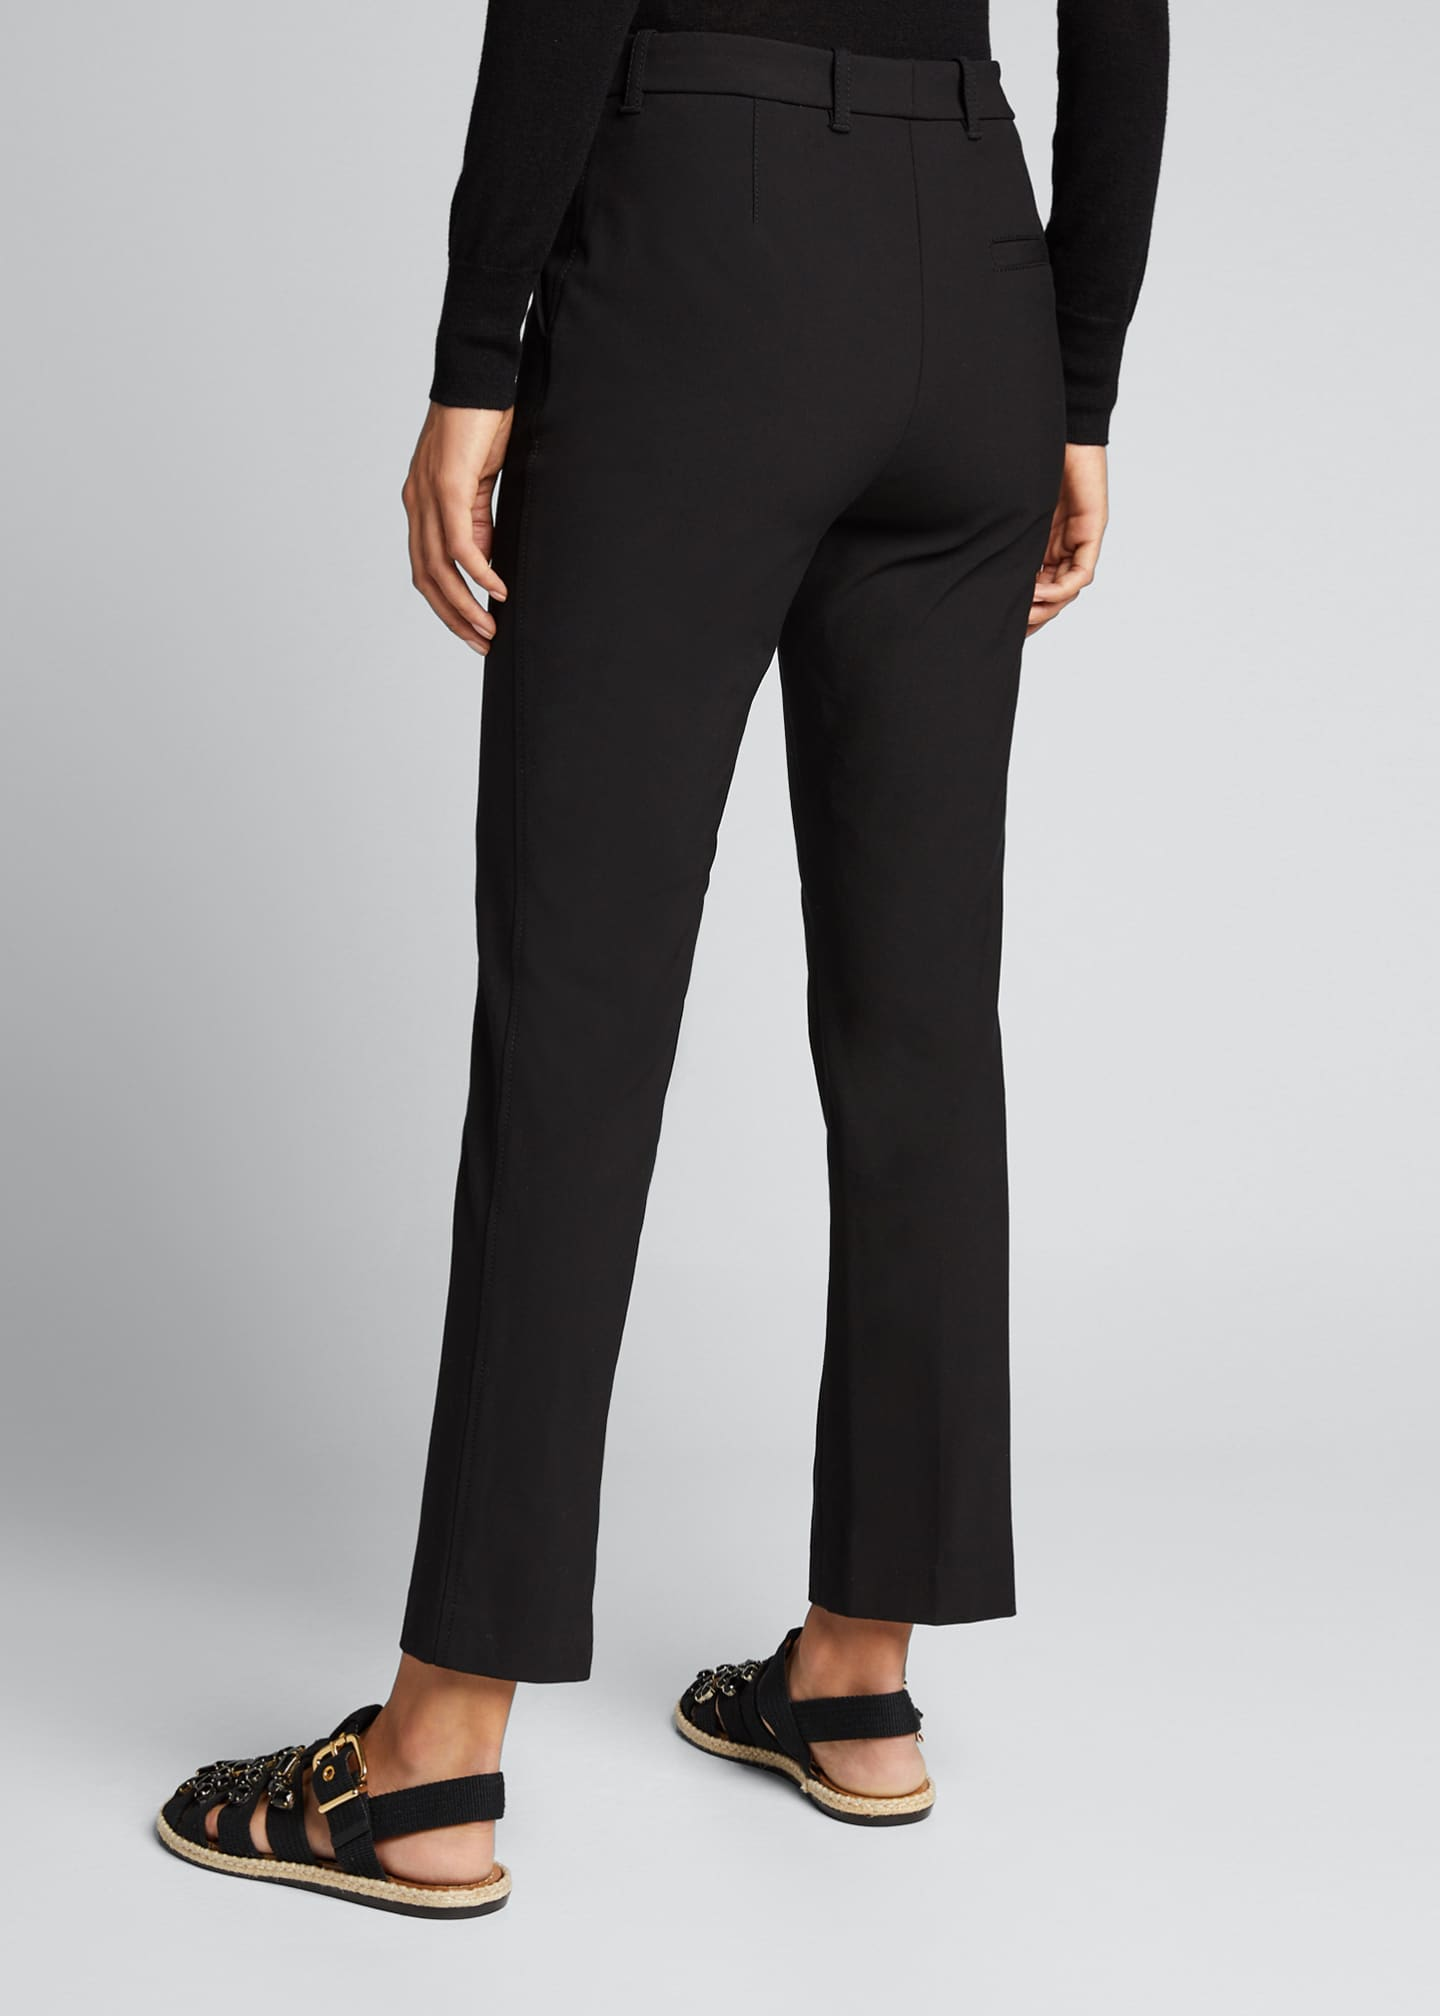 Image 2 of 5: Legging Ankle Pants